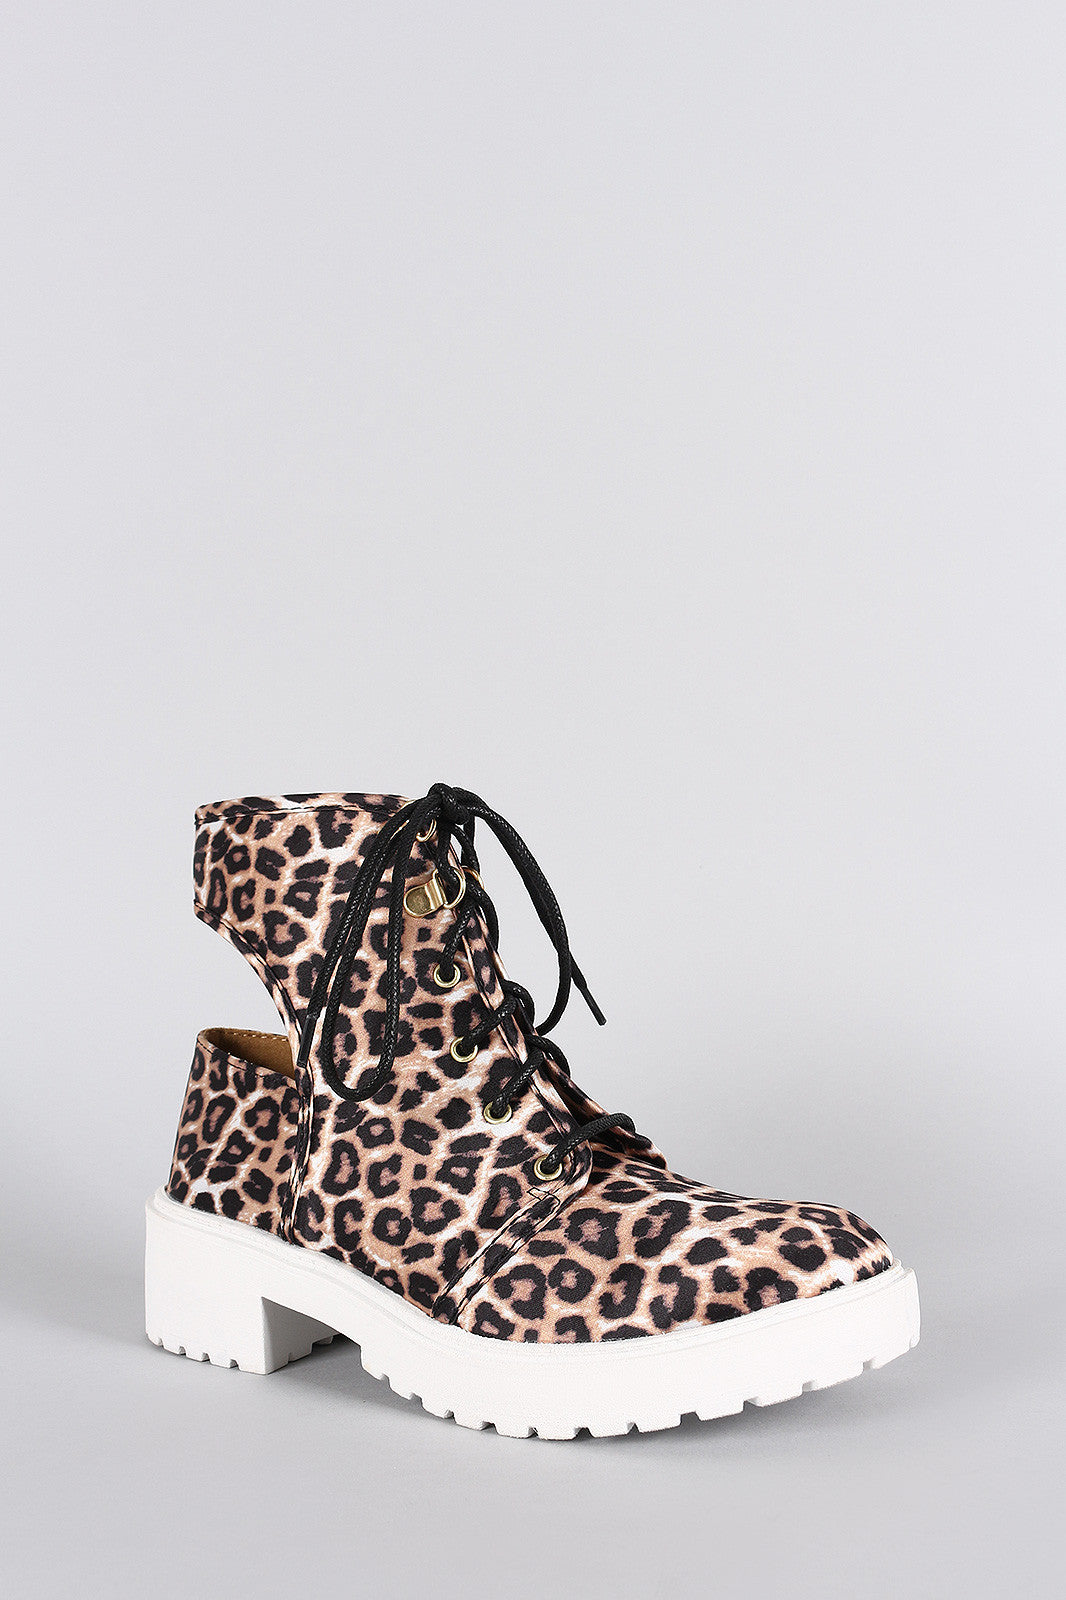 Qupid Leopard Round Toe Lace Up Cutout Booties - Thick 'N' Curvy Shop - 2